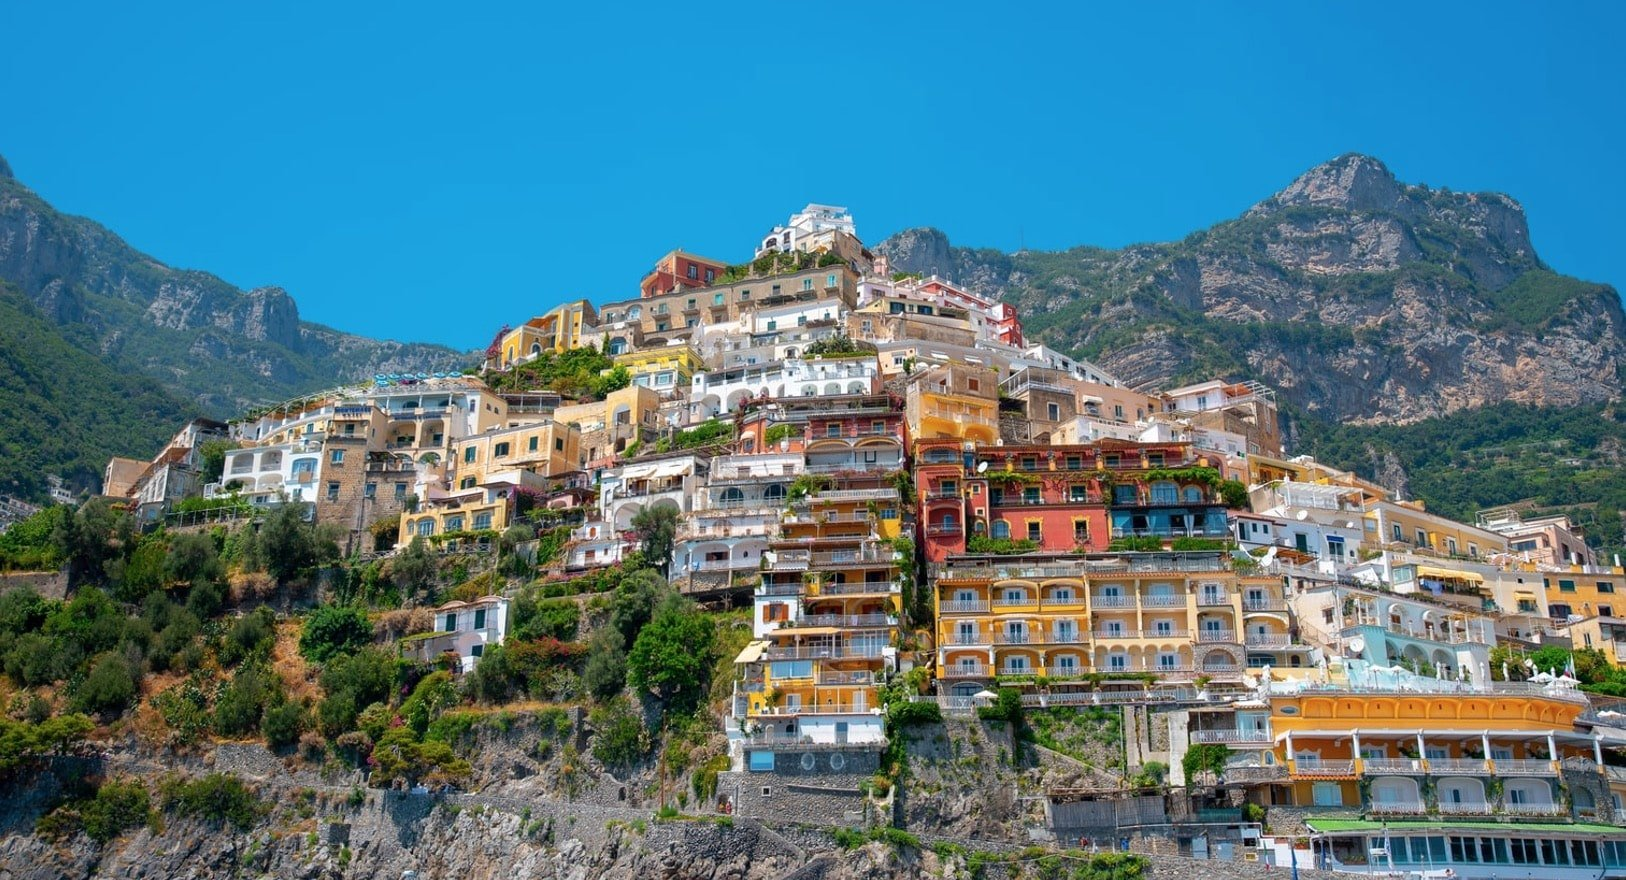 Amalfi and surroundings itinerary by car